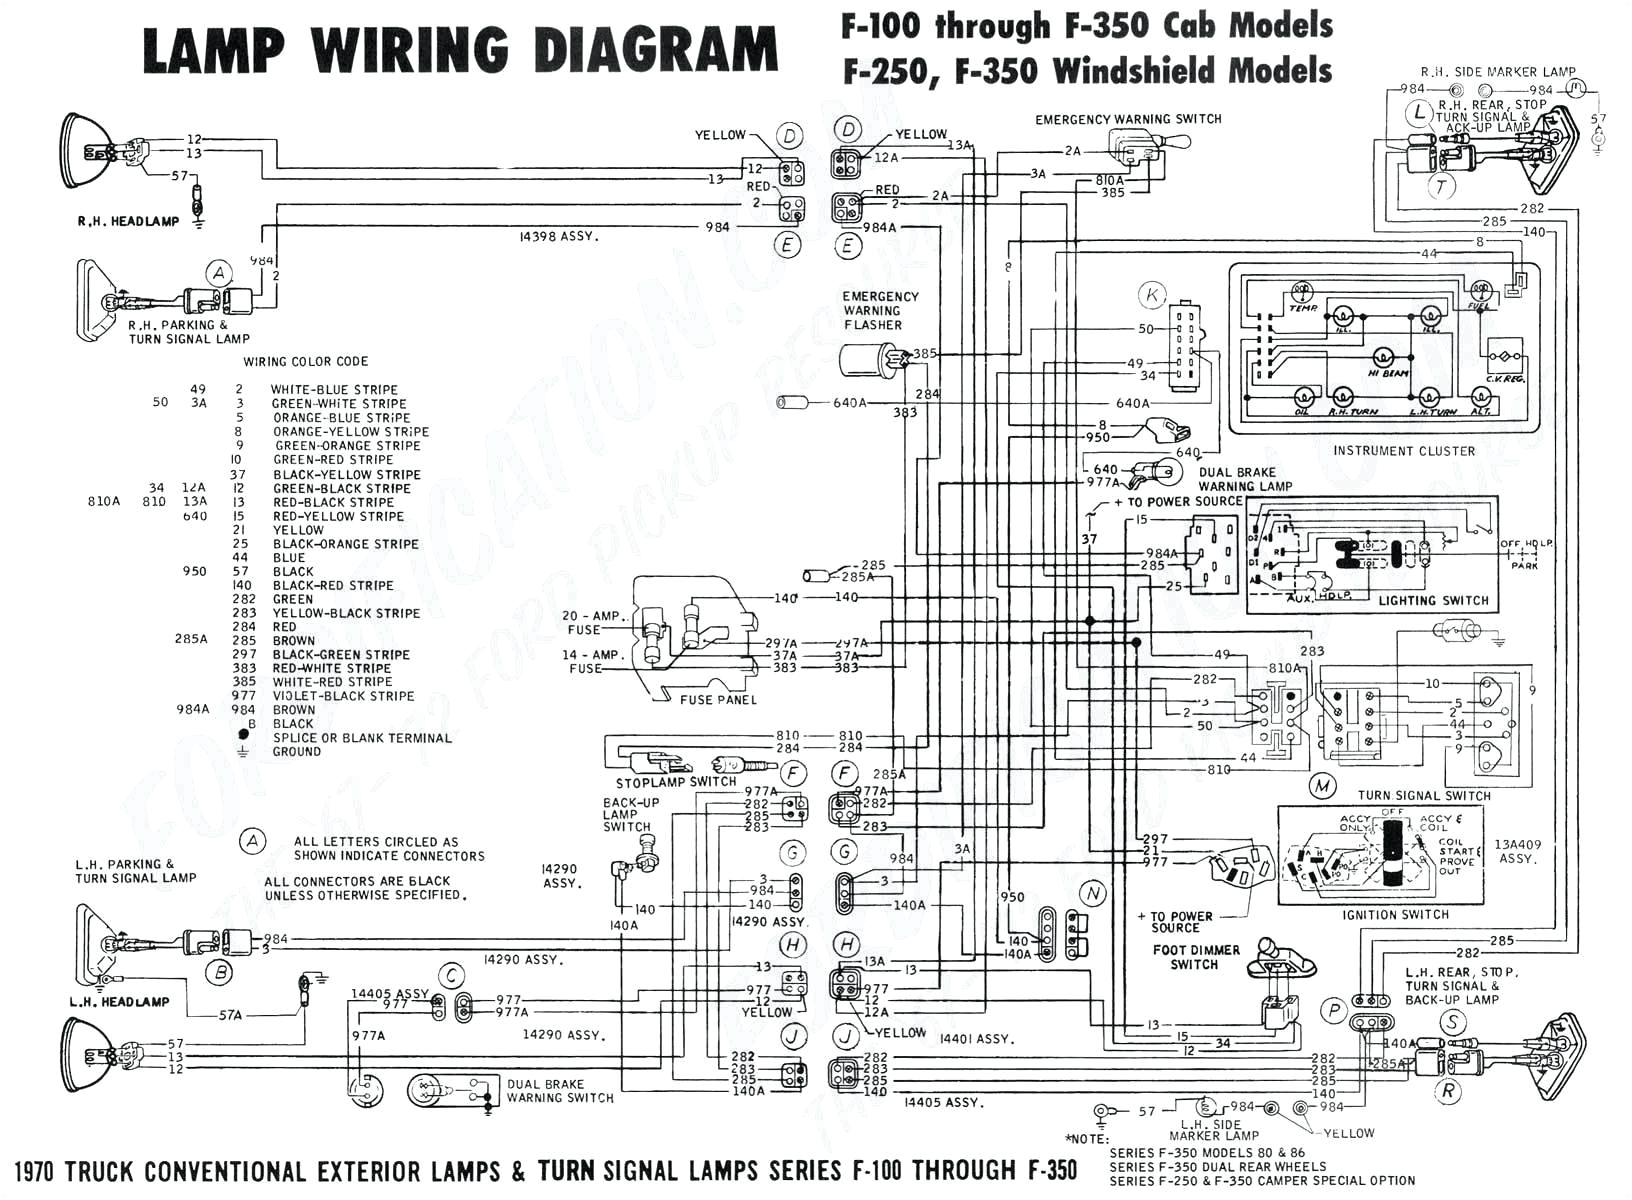 ford ignition switch wiring diagram best of 2000 f450 wiring diagram ignition switch schematics wiring diagrams